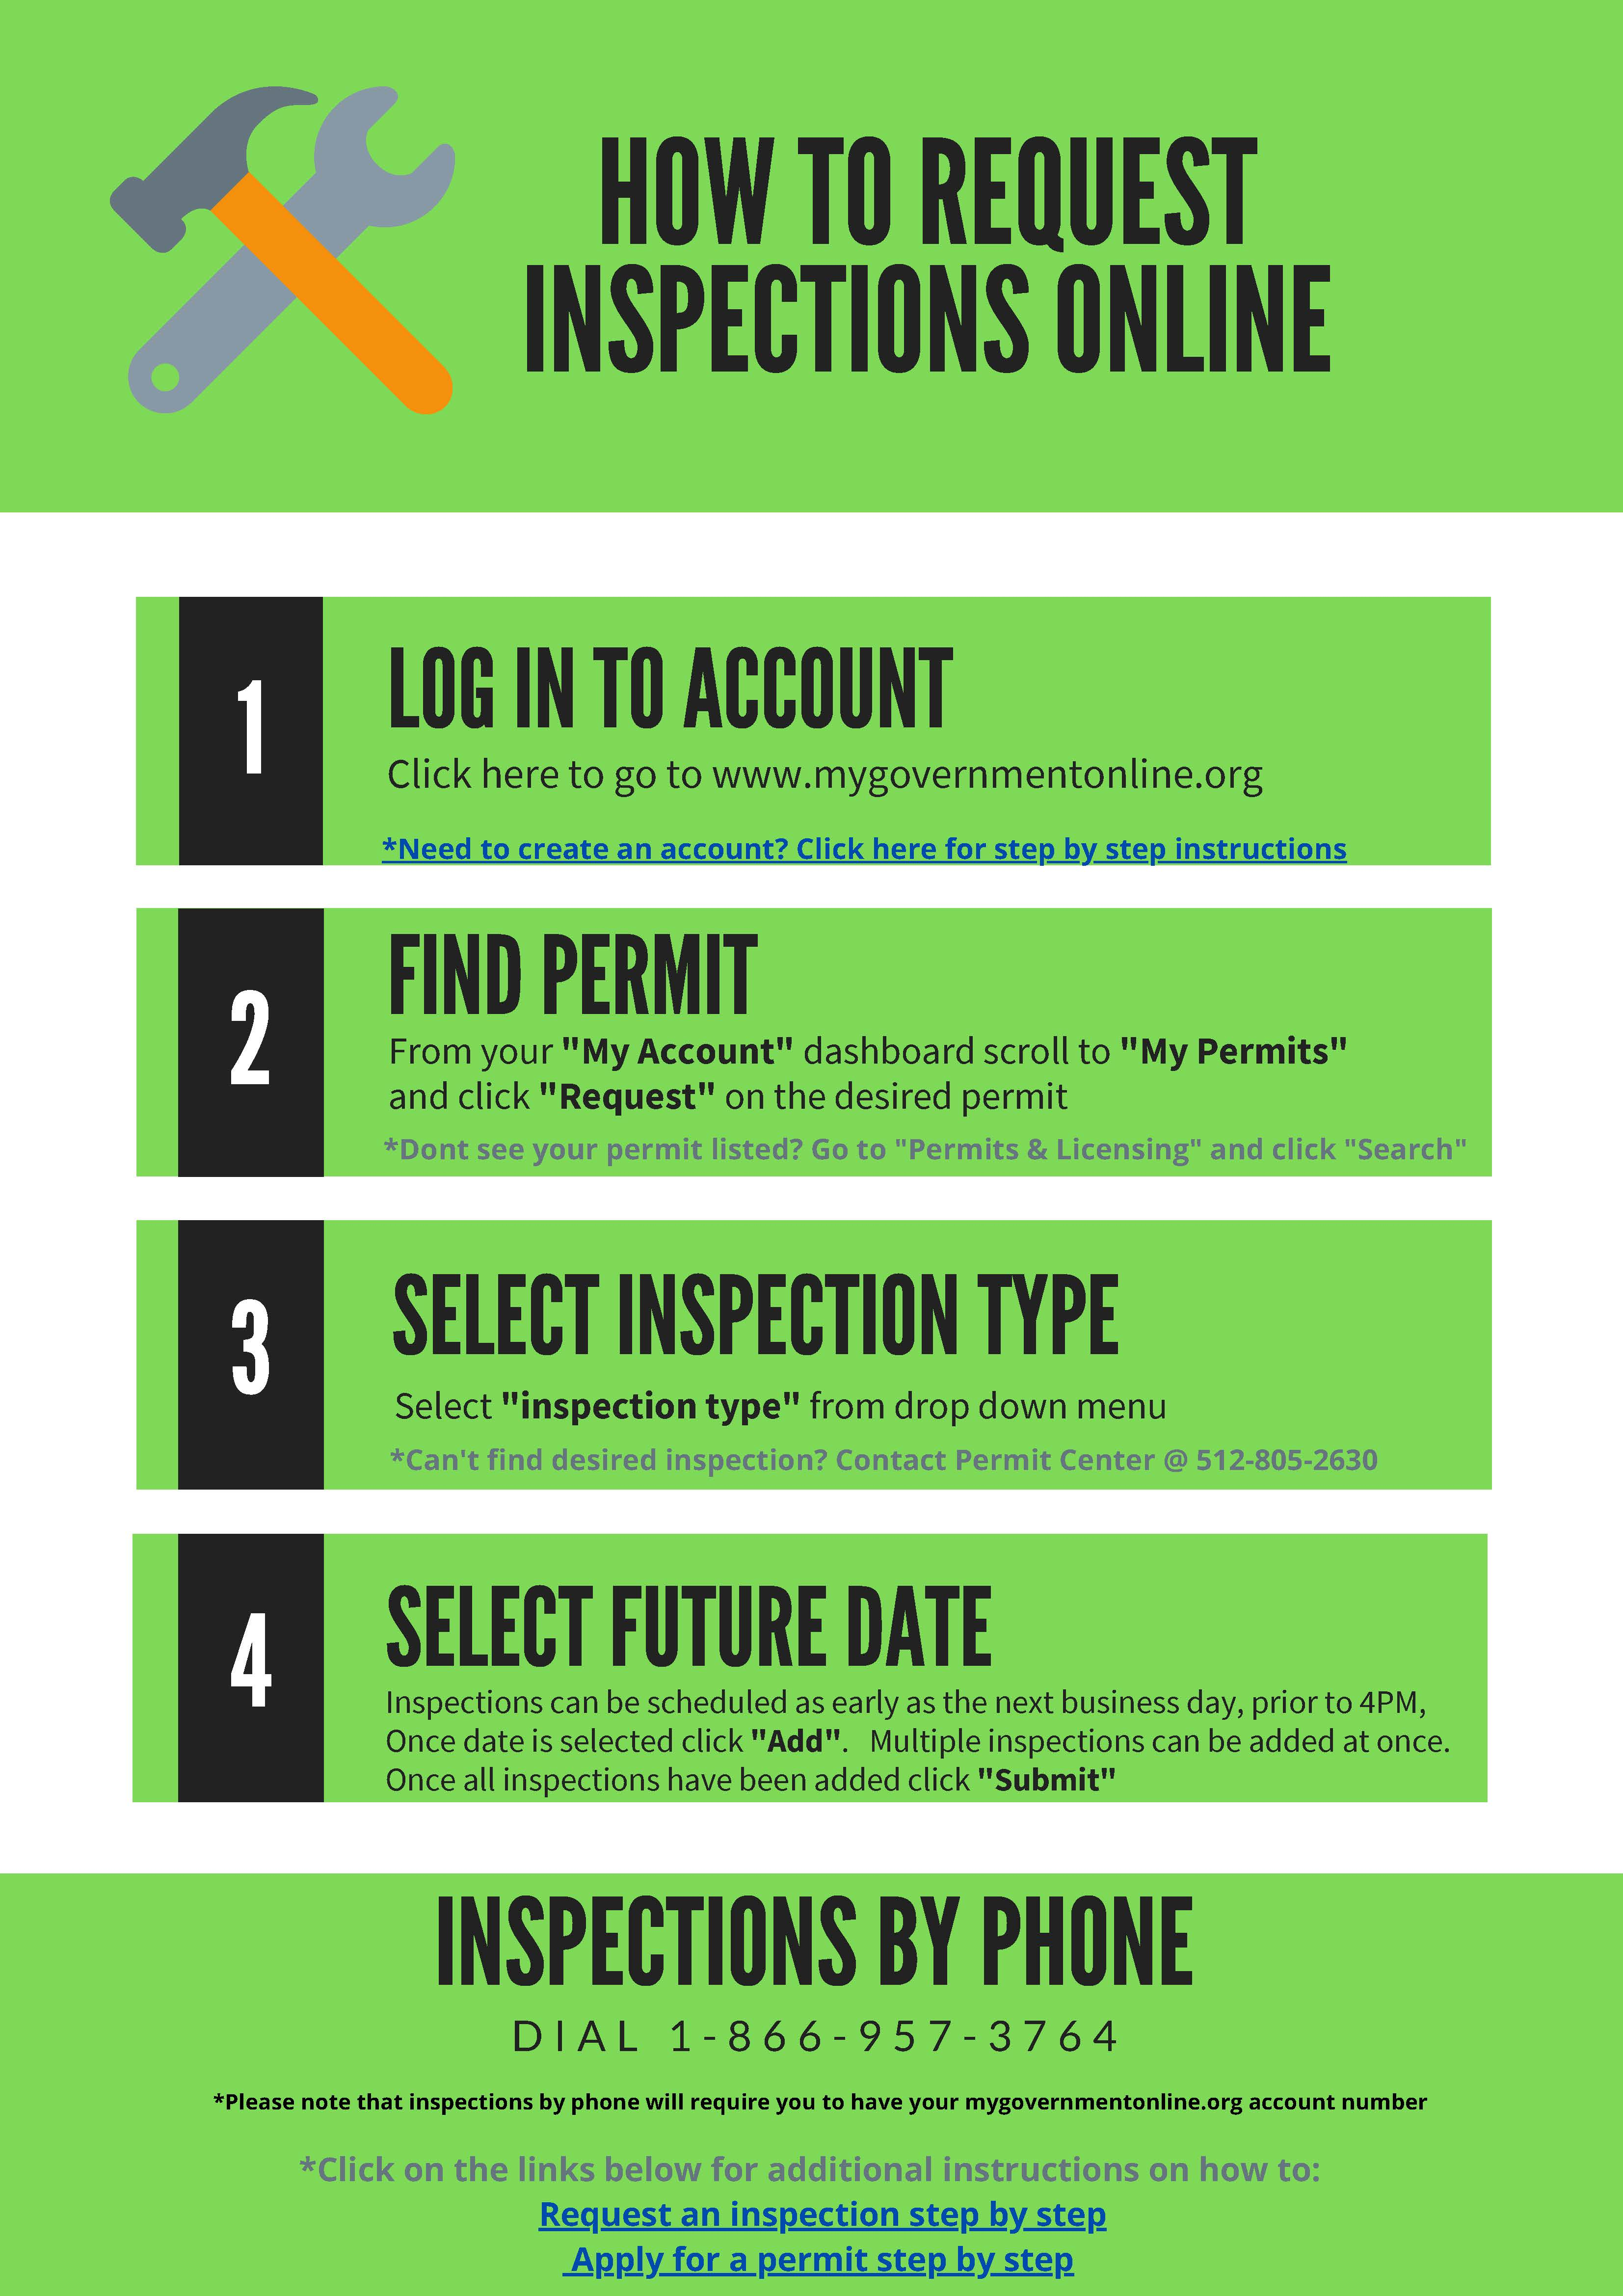 How to request inspections online infographic (2)